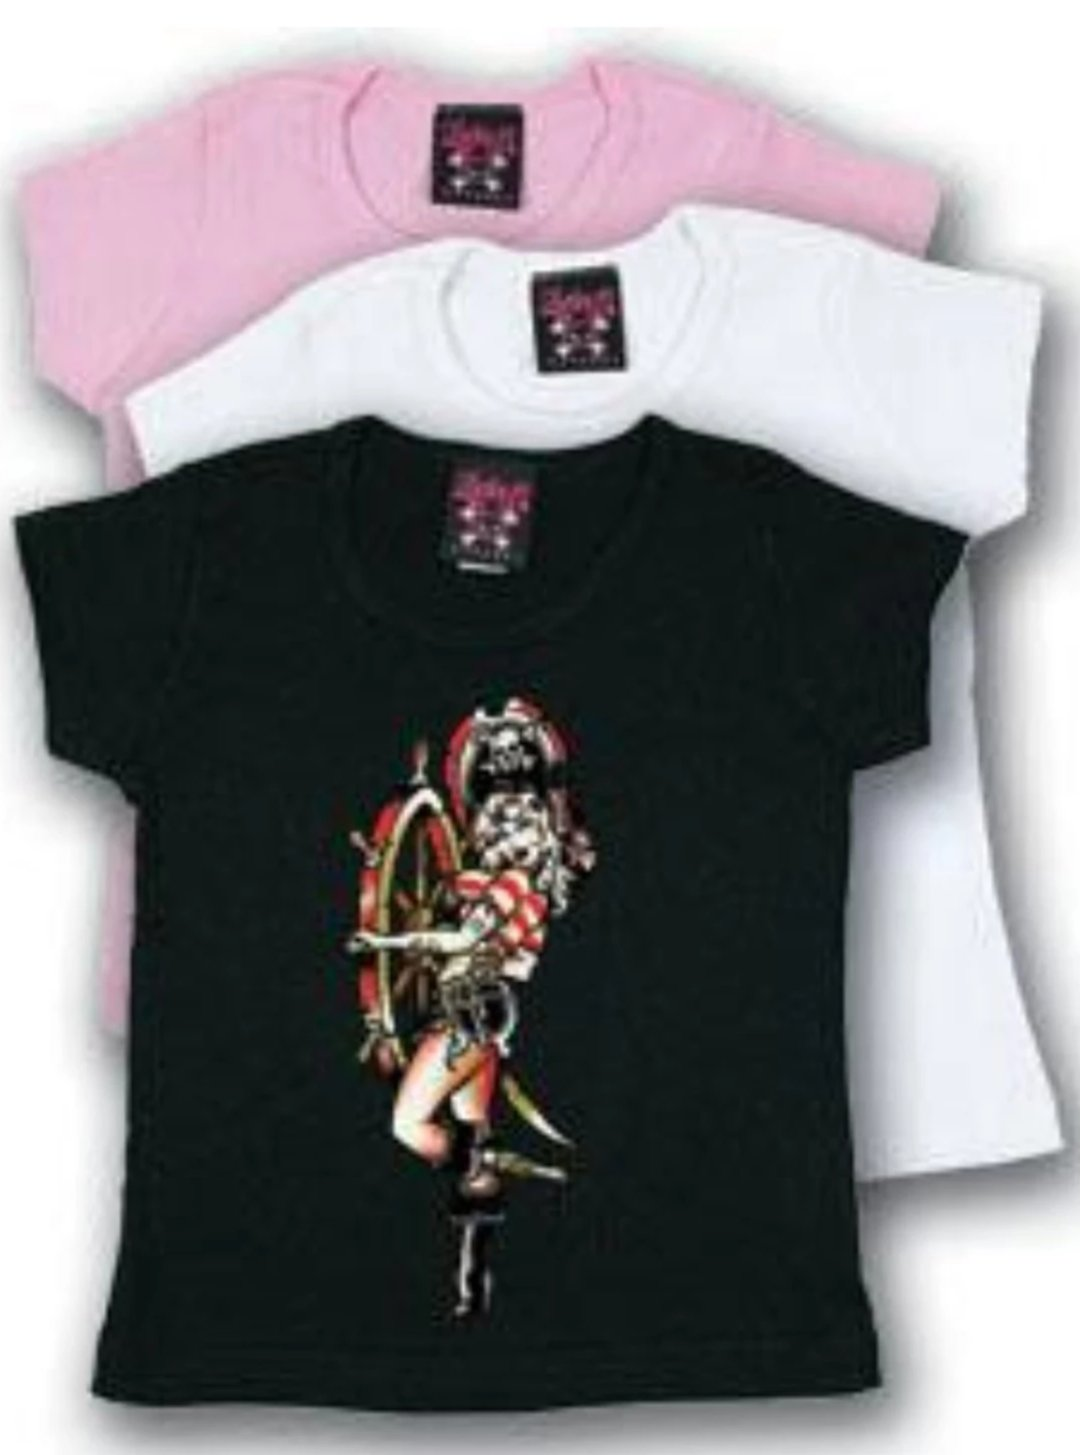 The PIRATE GIRL Toddler Tee - LIMITED QUANTITIES AND SIZES AVAILABLE